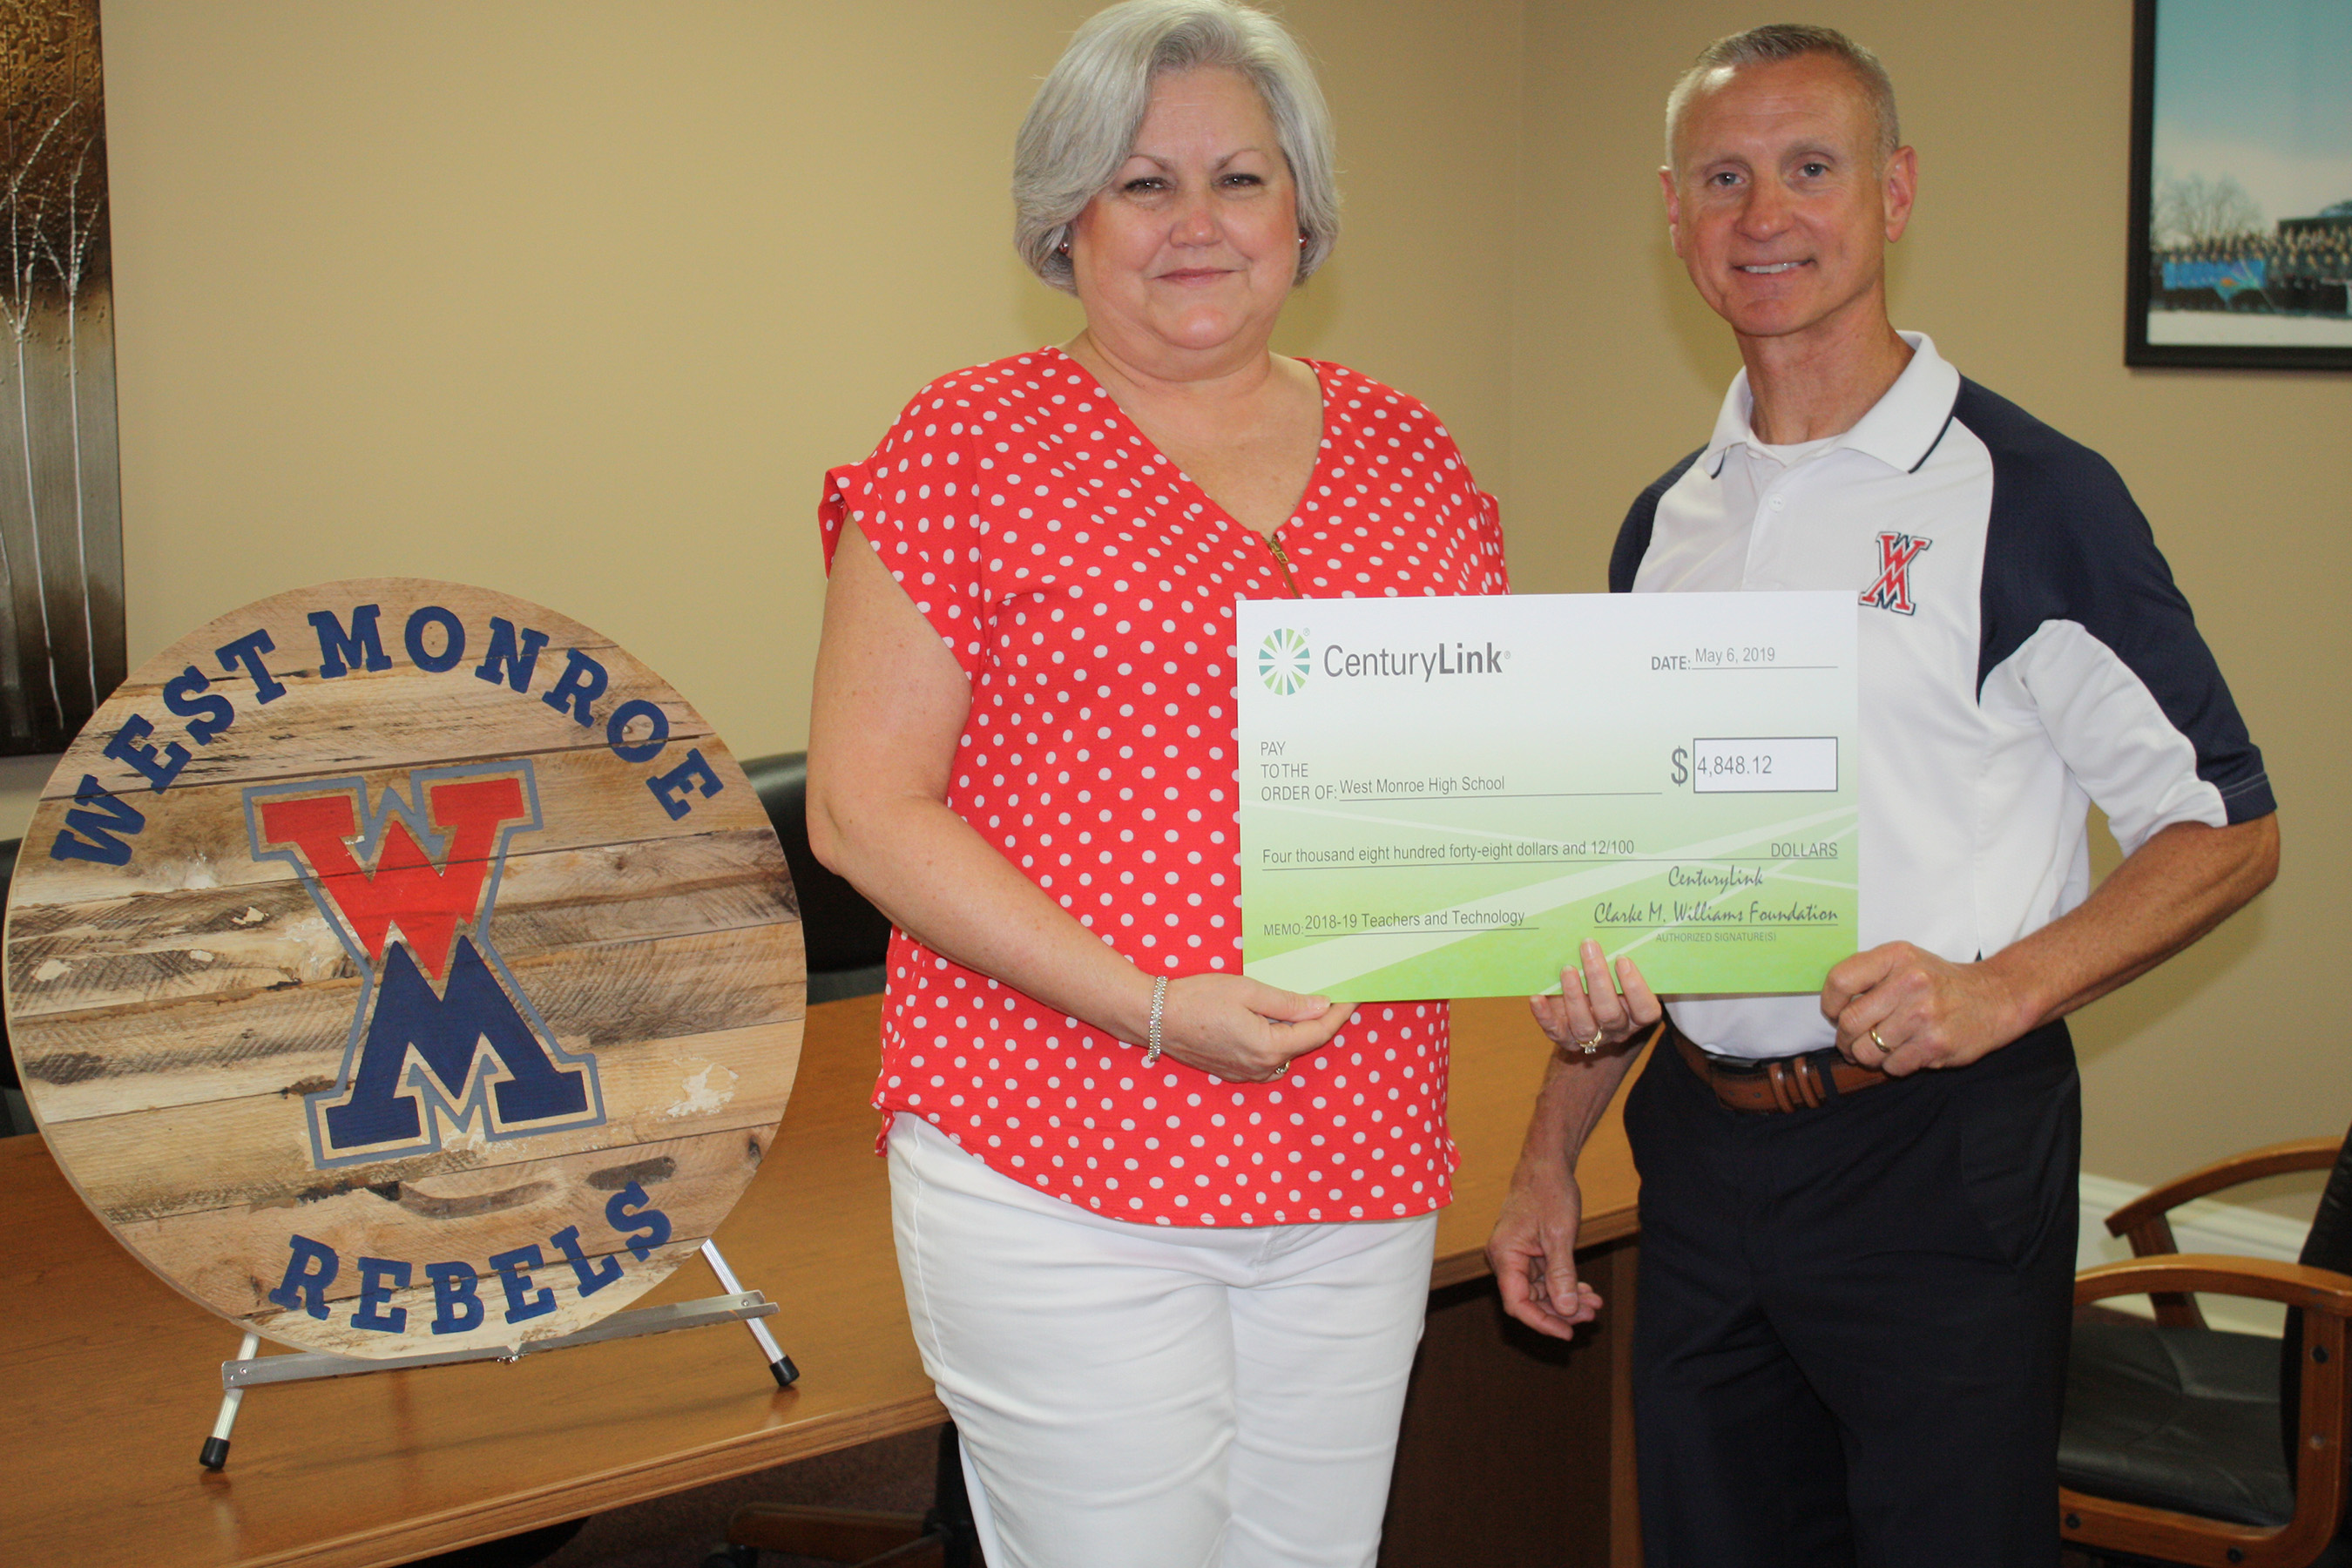 West Monroe High School in West Monroe, Louisiana, used its CenturyLink grant to purchase Chromebooks for social studies learning activities. From left are West Monroe teacher Mitzi Murray and principal Shelby Ainsworth.